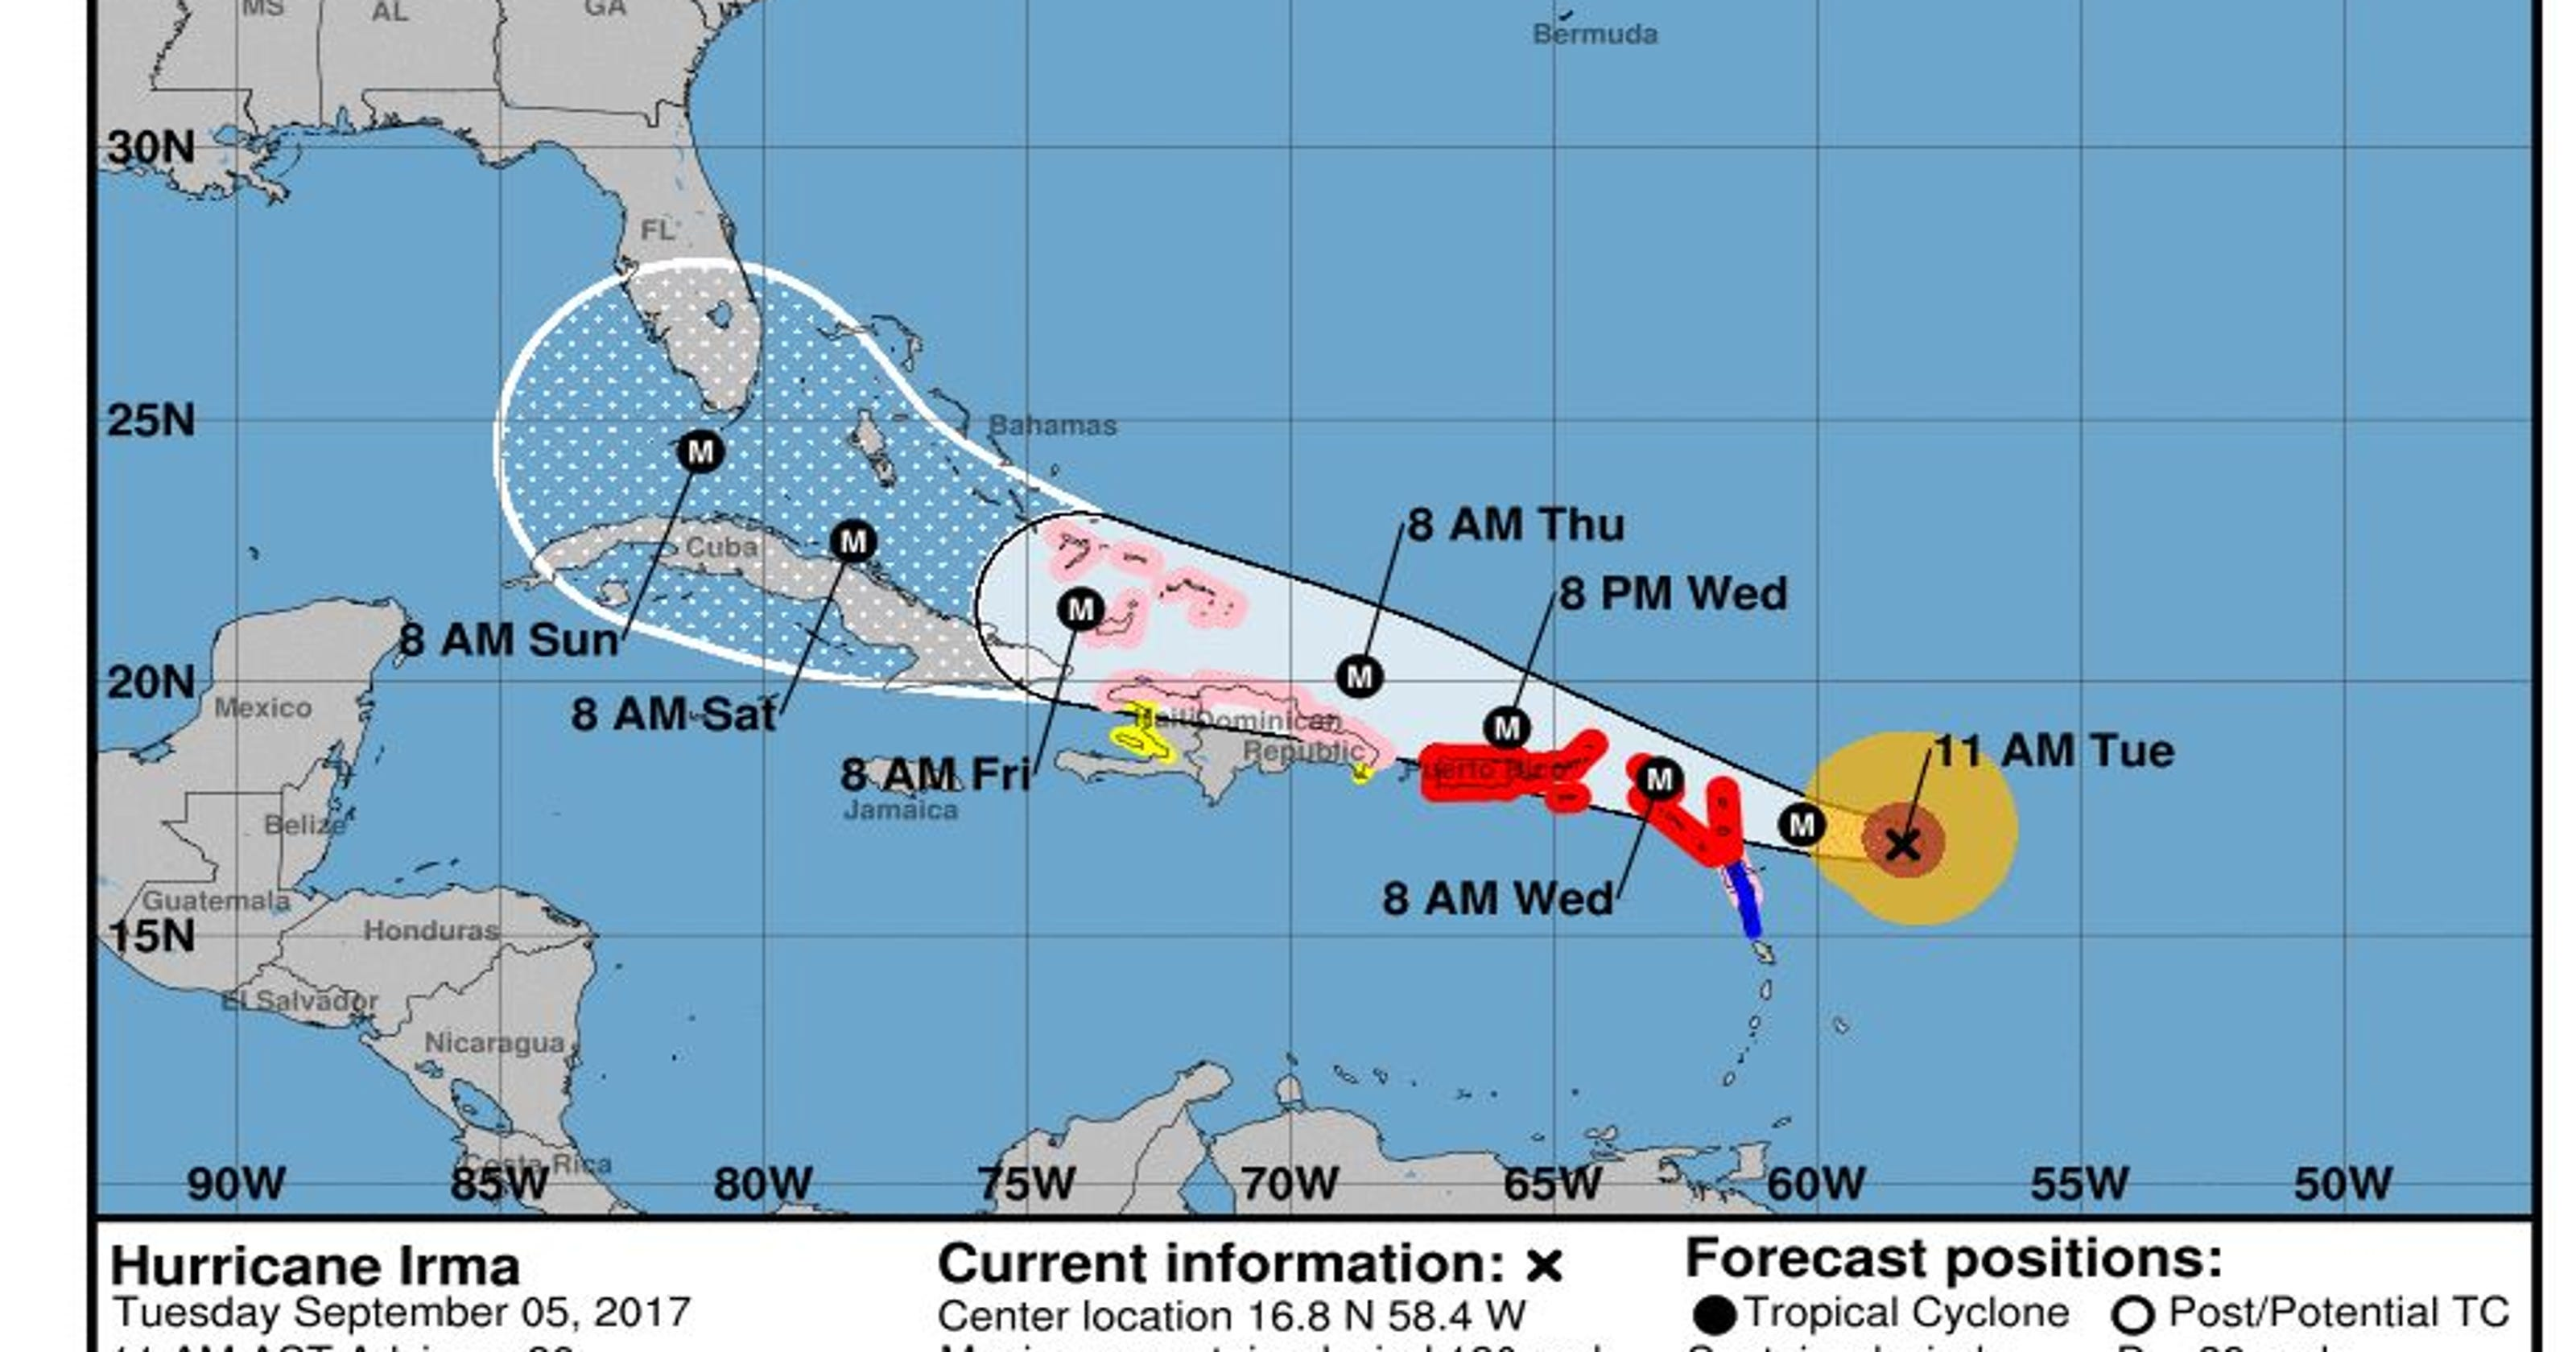 Hurricane Irma 11am update Storm ting stronger winds up to 180 mph